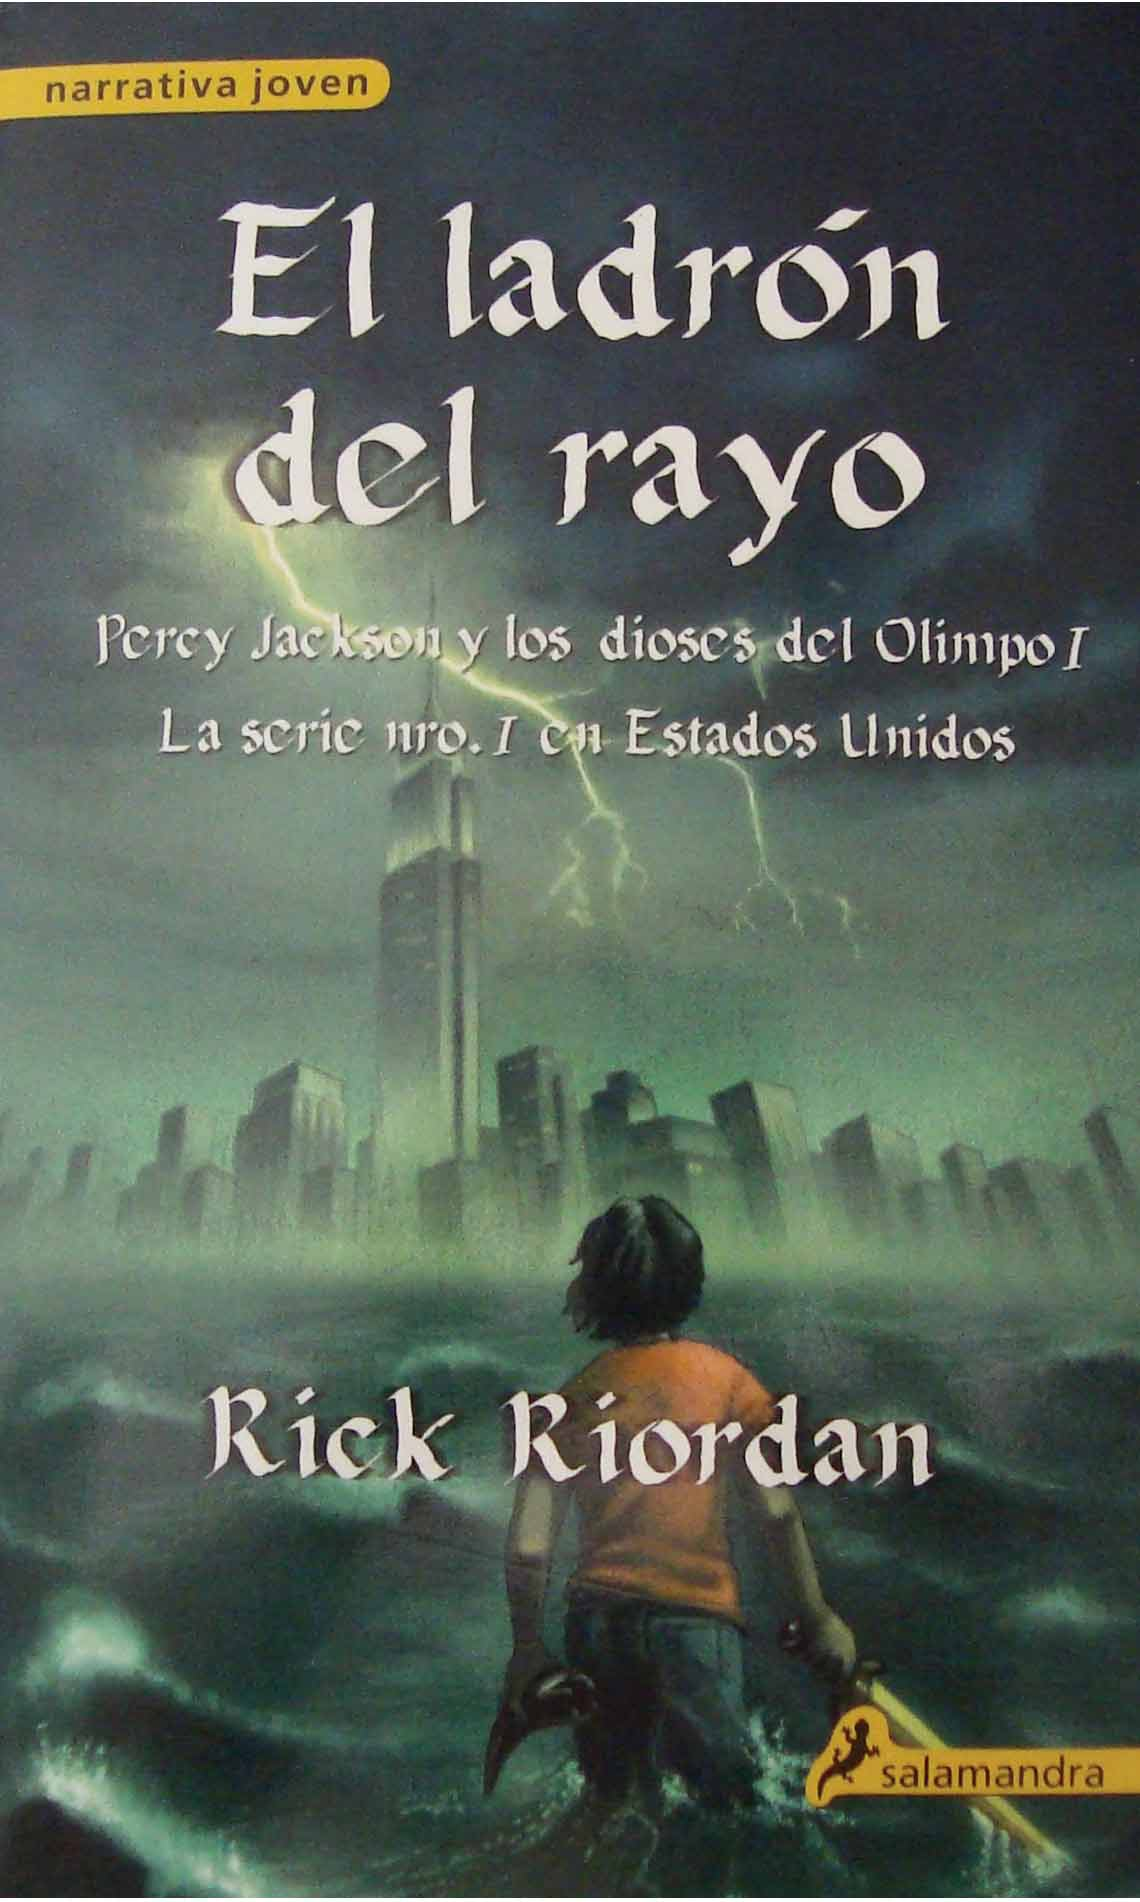 percy jackson quotes from the book  quotesgram